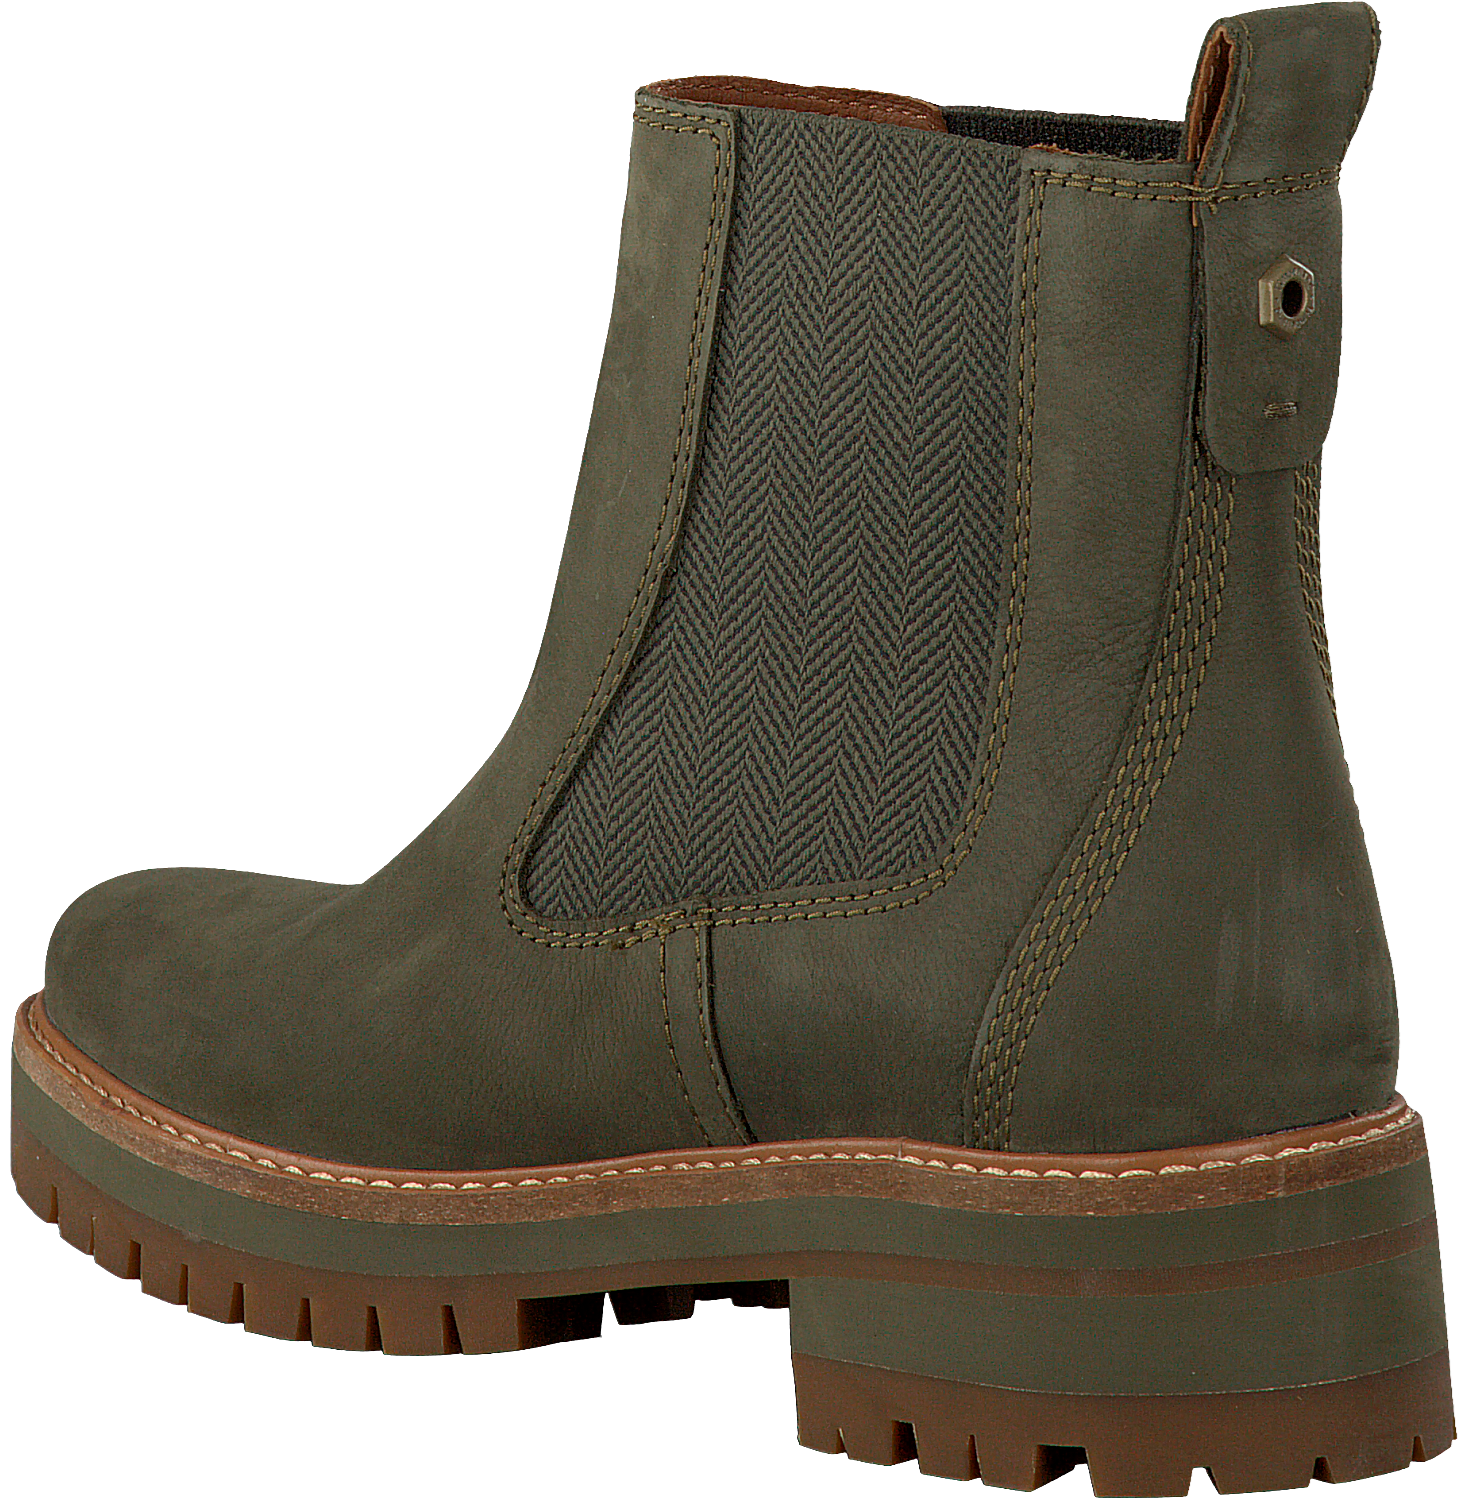 acbae5a45 Green TIMBERLAND Chelsea boots COURMAYEUR VALLEY CH - Omoda.com